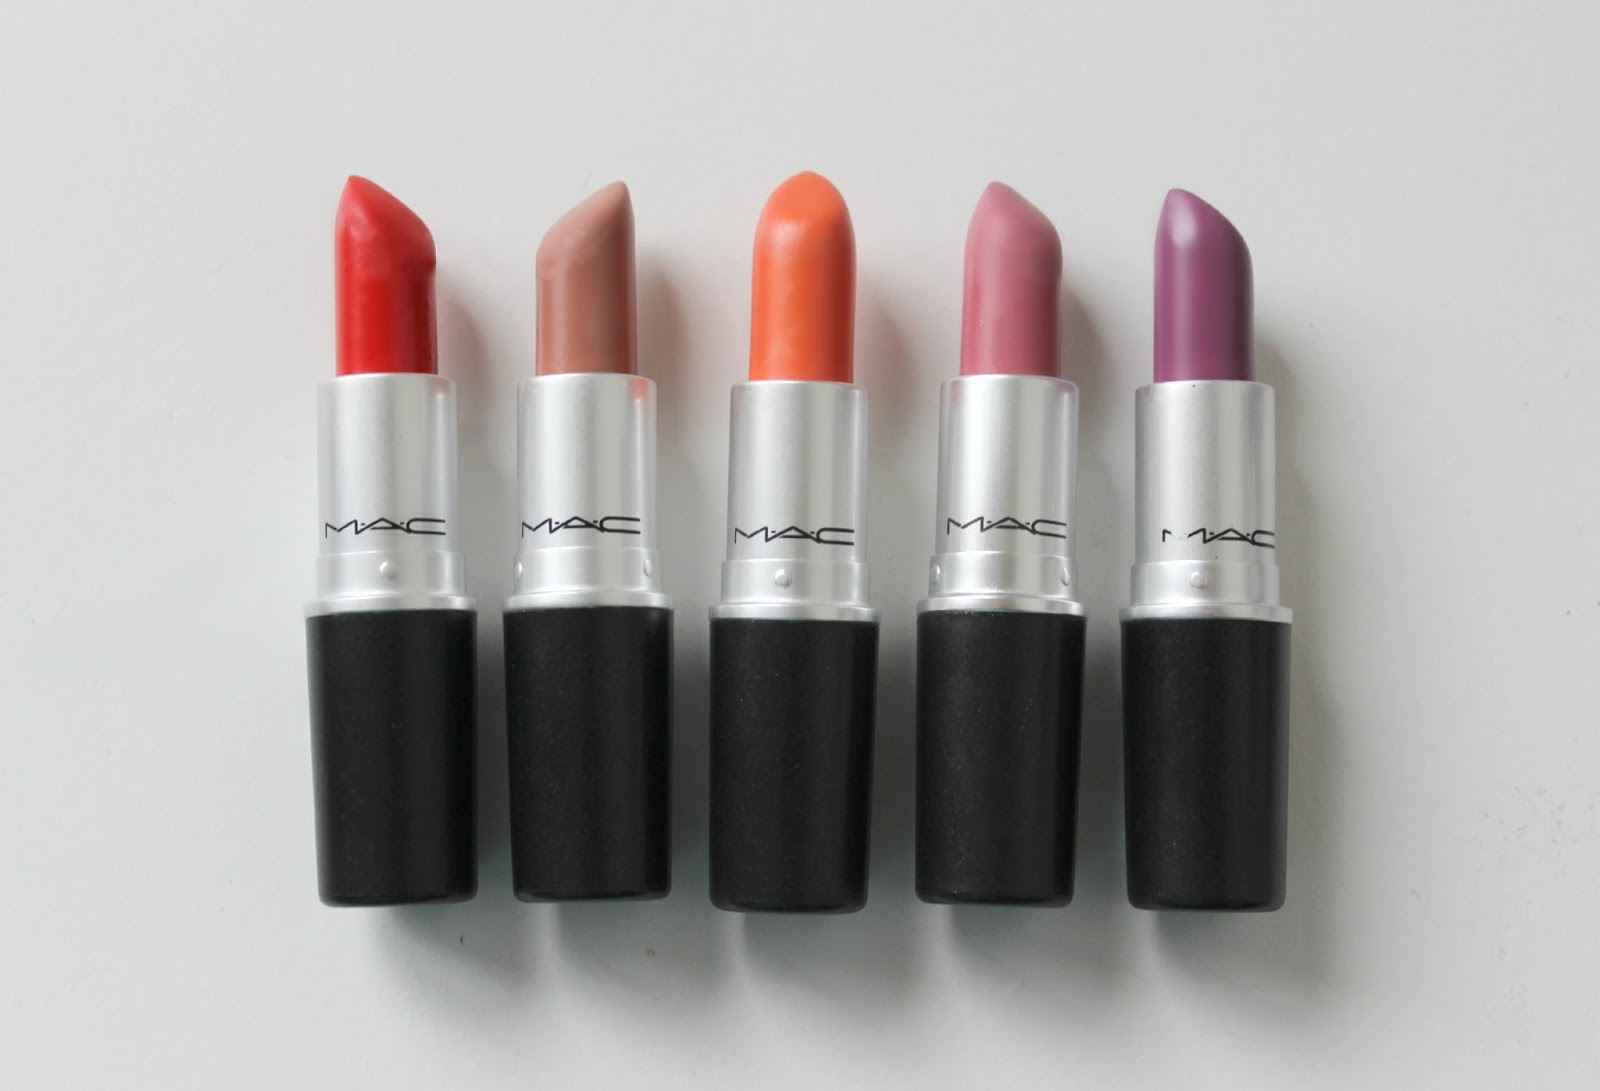 A picture of MAC lipsticks including Lady Danger, Honey Love, Saigon Summer, Pink Plaid and Up the Amp.